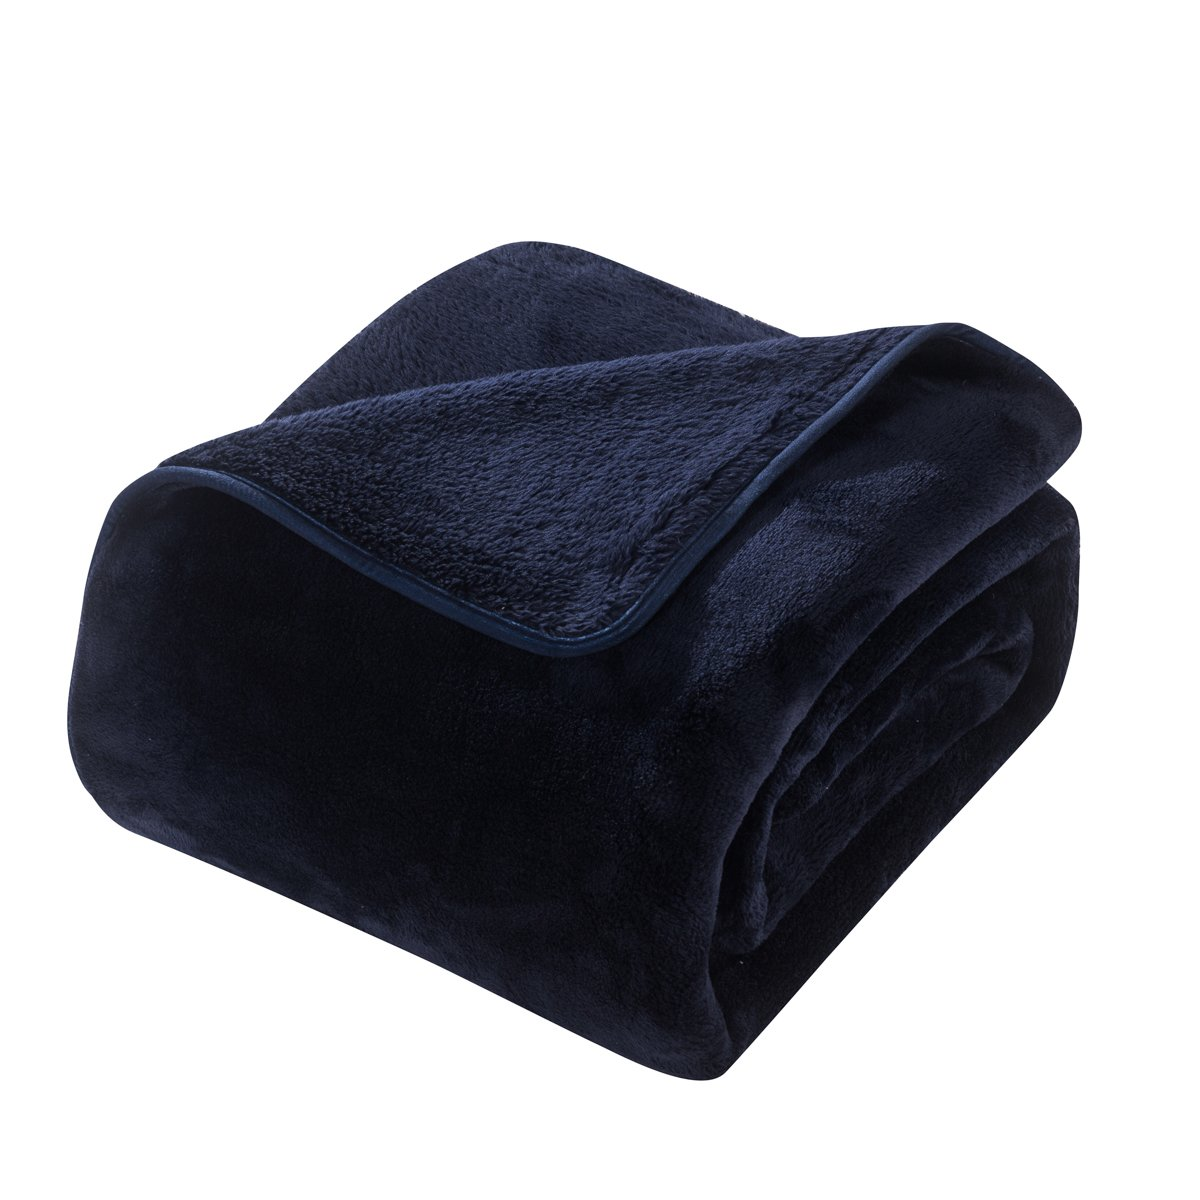 HYSEAS Heavy Thick Blanket, Extra Soft Plush Bed Blanket, Queen, Navy Blue